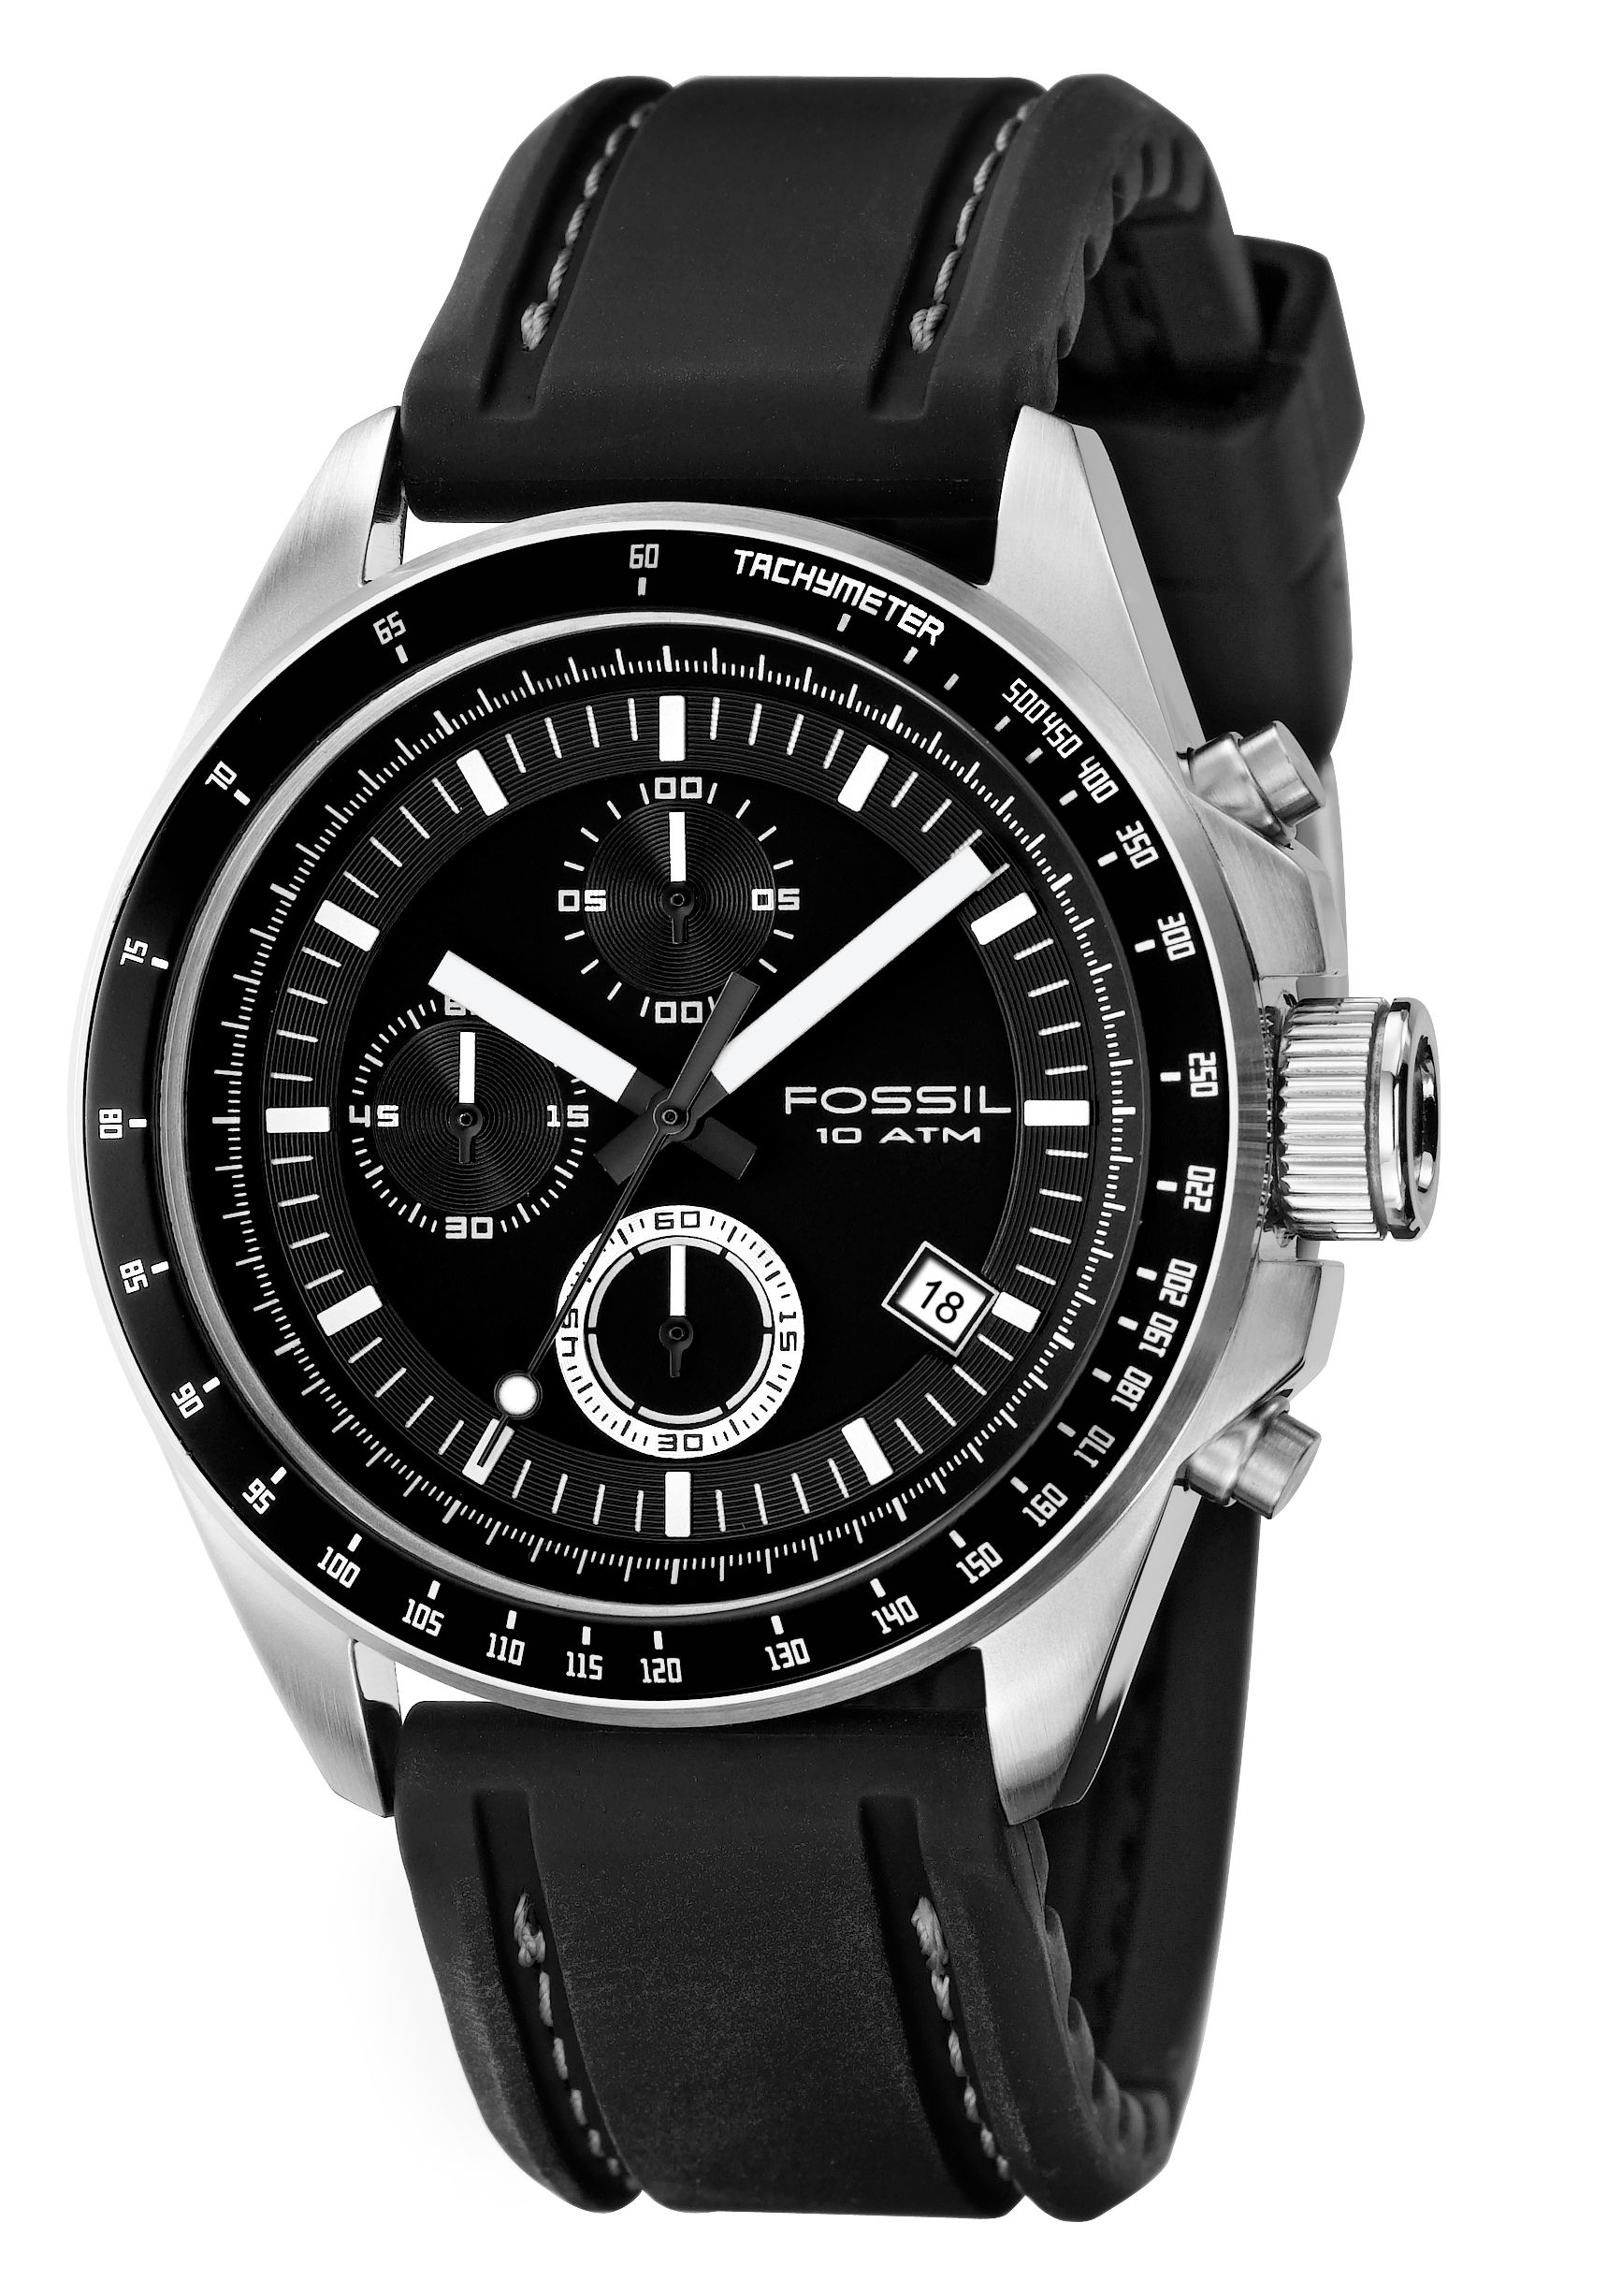 Fossil CH2573 Classic Chronograph Mens Watch, product image